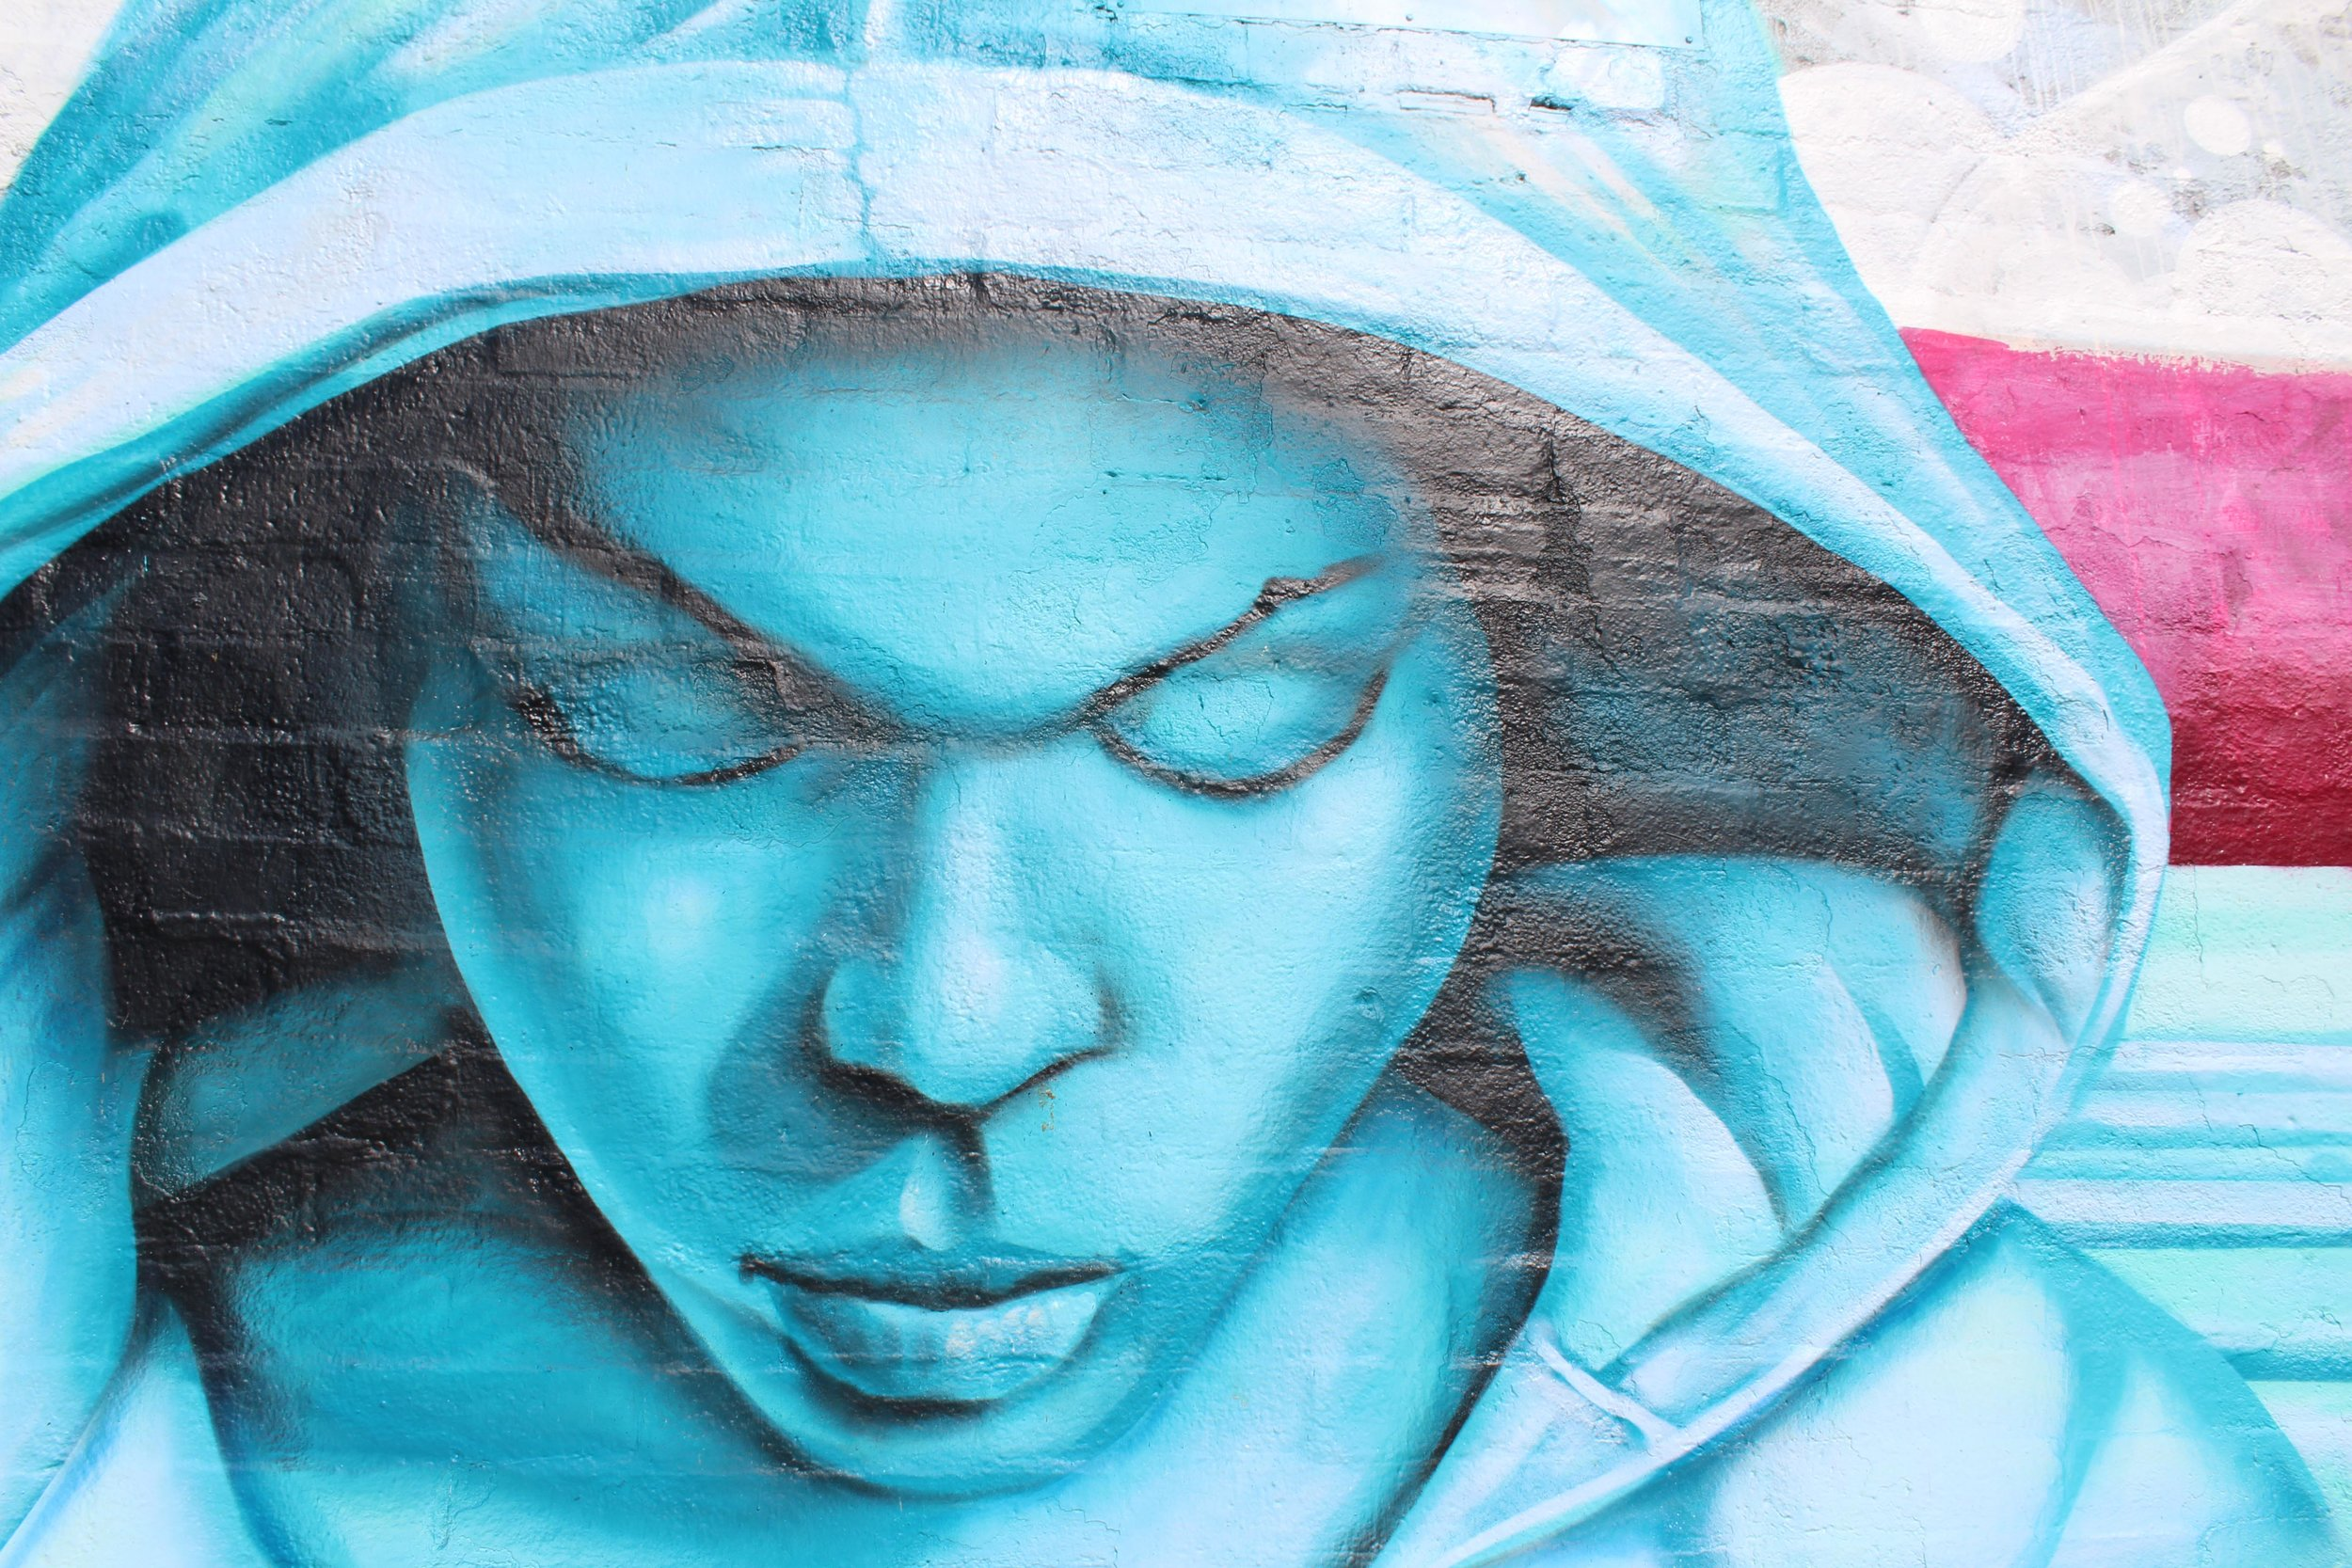 A very focused individual has been depicted onto a mural in Santa Monica, Calif. On Pico Blvd.